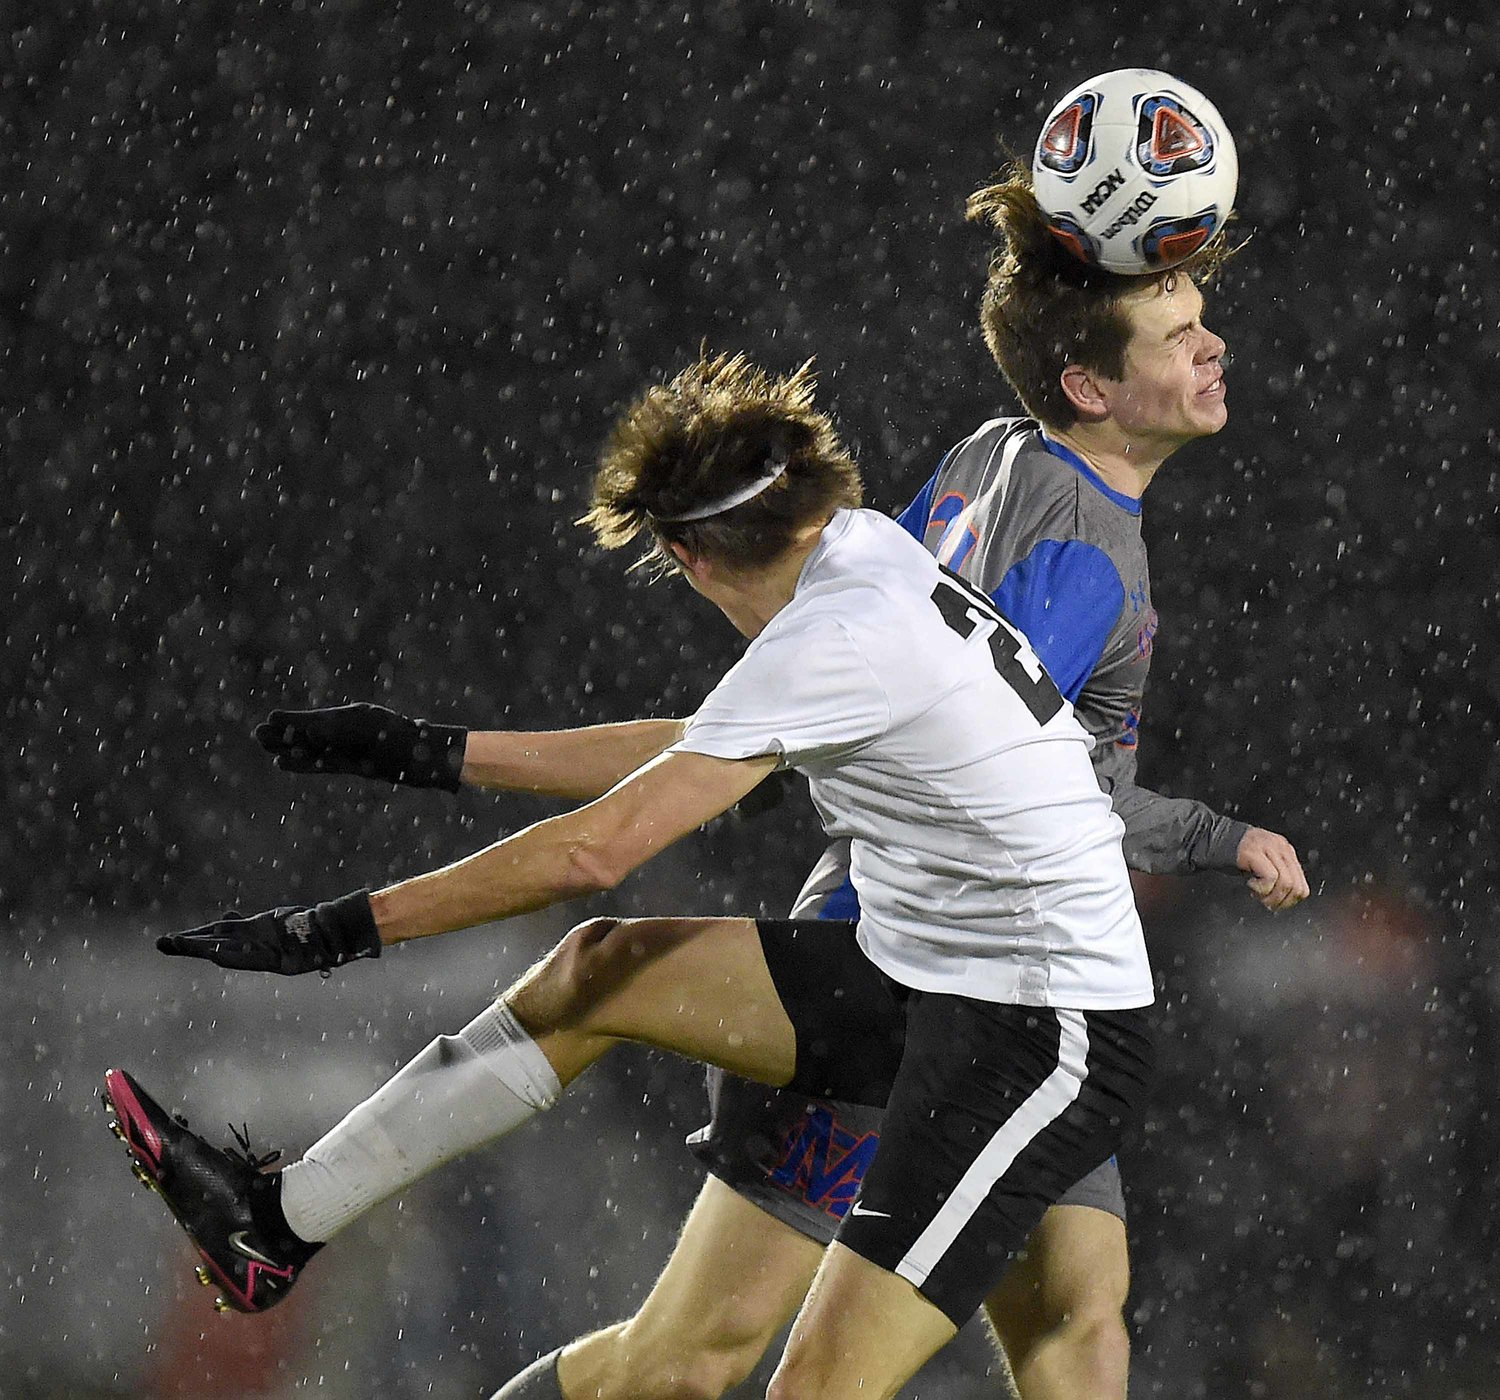 Madison Central's Will Scoggins heads the ball away from Brandon's Layton Levingston (29) in the MHSAA Class 6A State Soccer Championship on Saturday, February 6, 2021, at Clinton High School in Clinton, Miss.